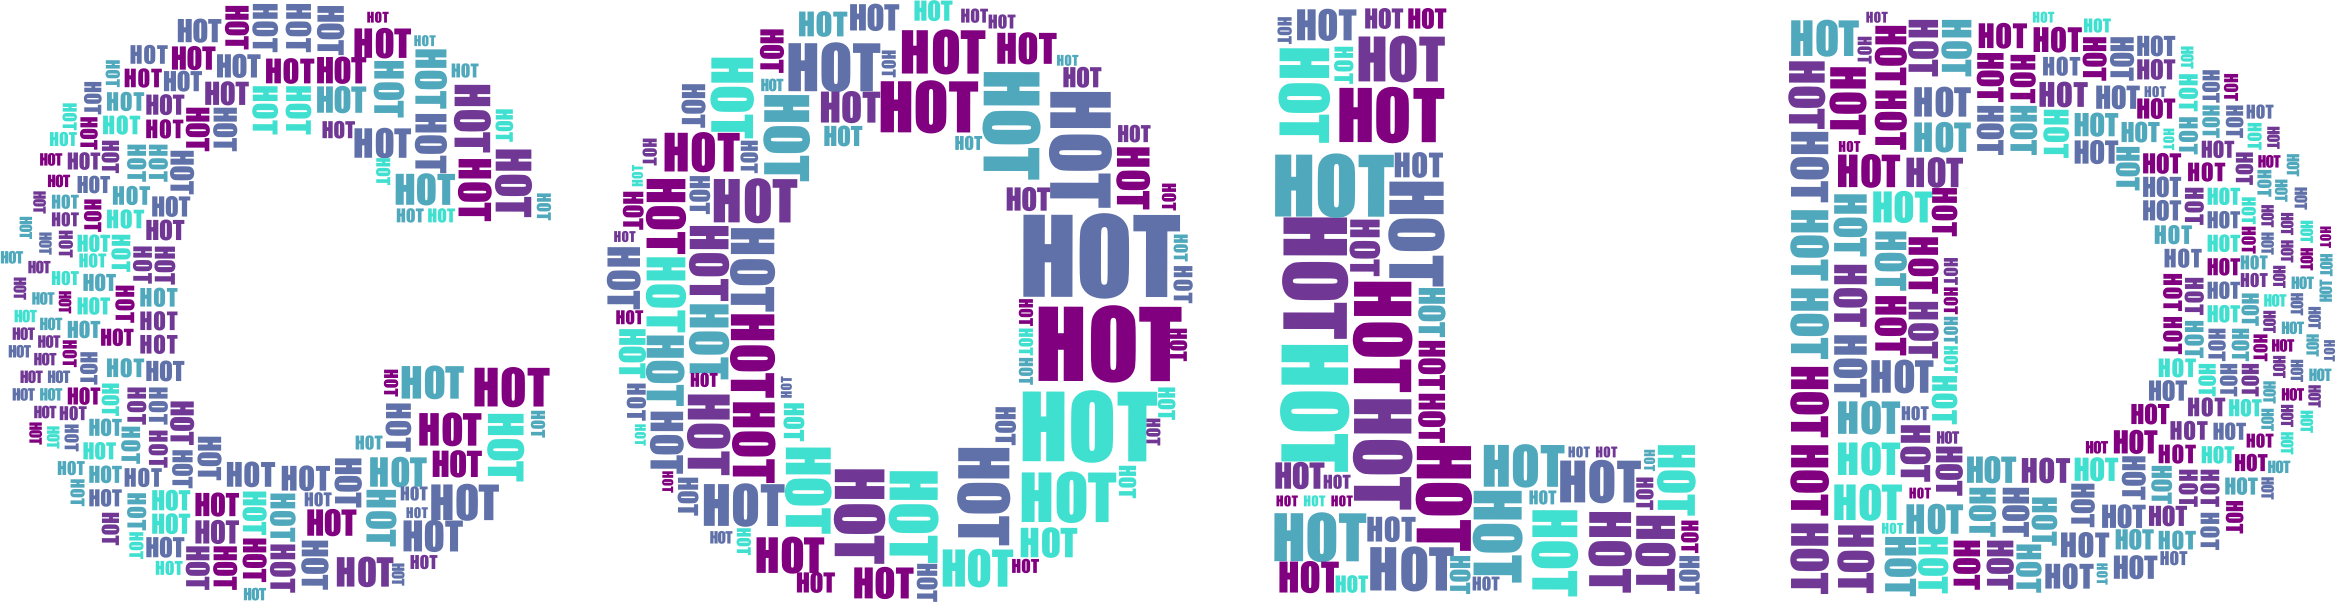 Hot And Cold Typography 2 No Background by GDJ